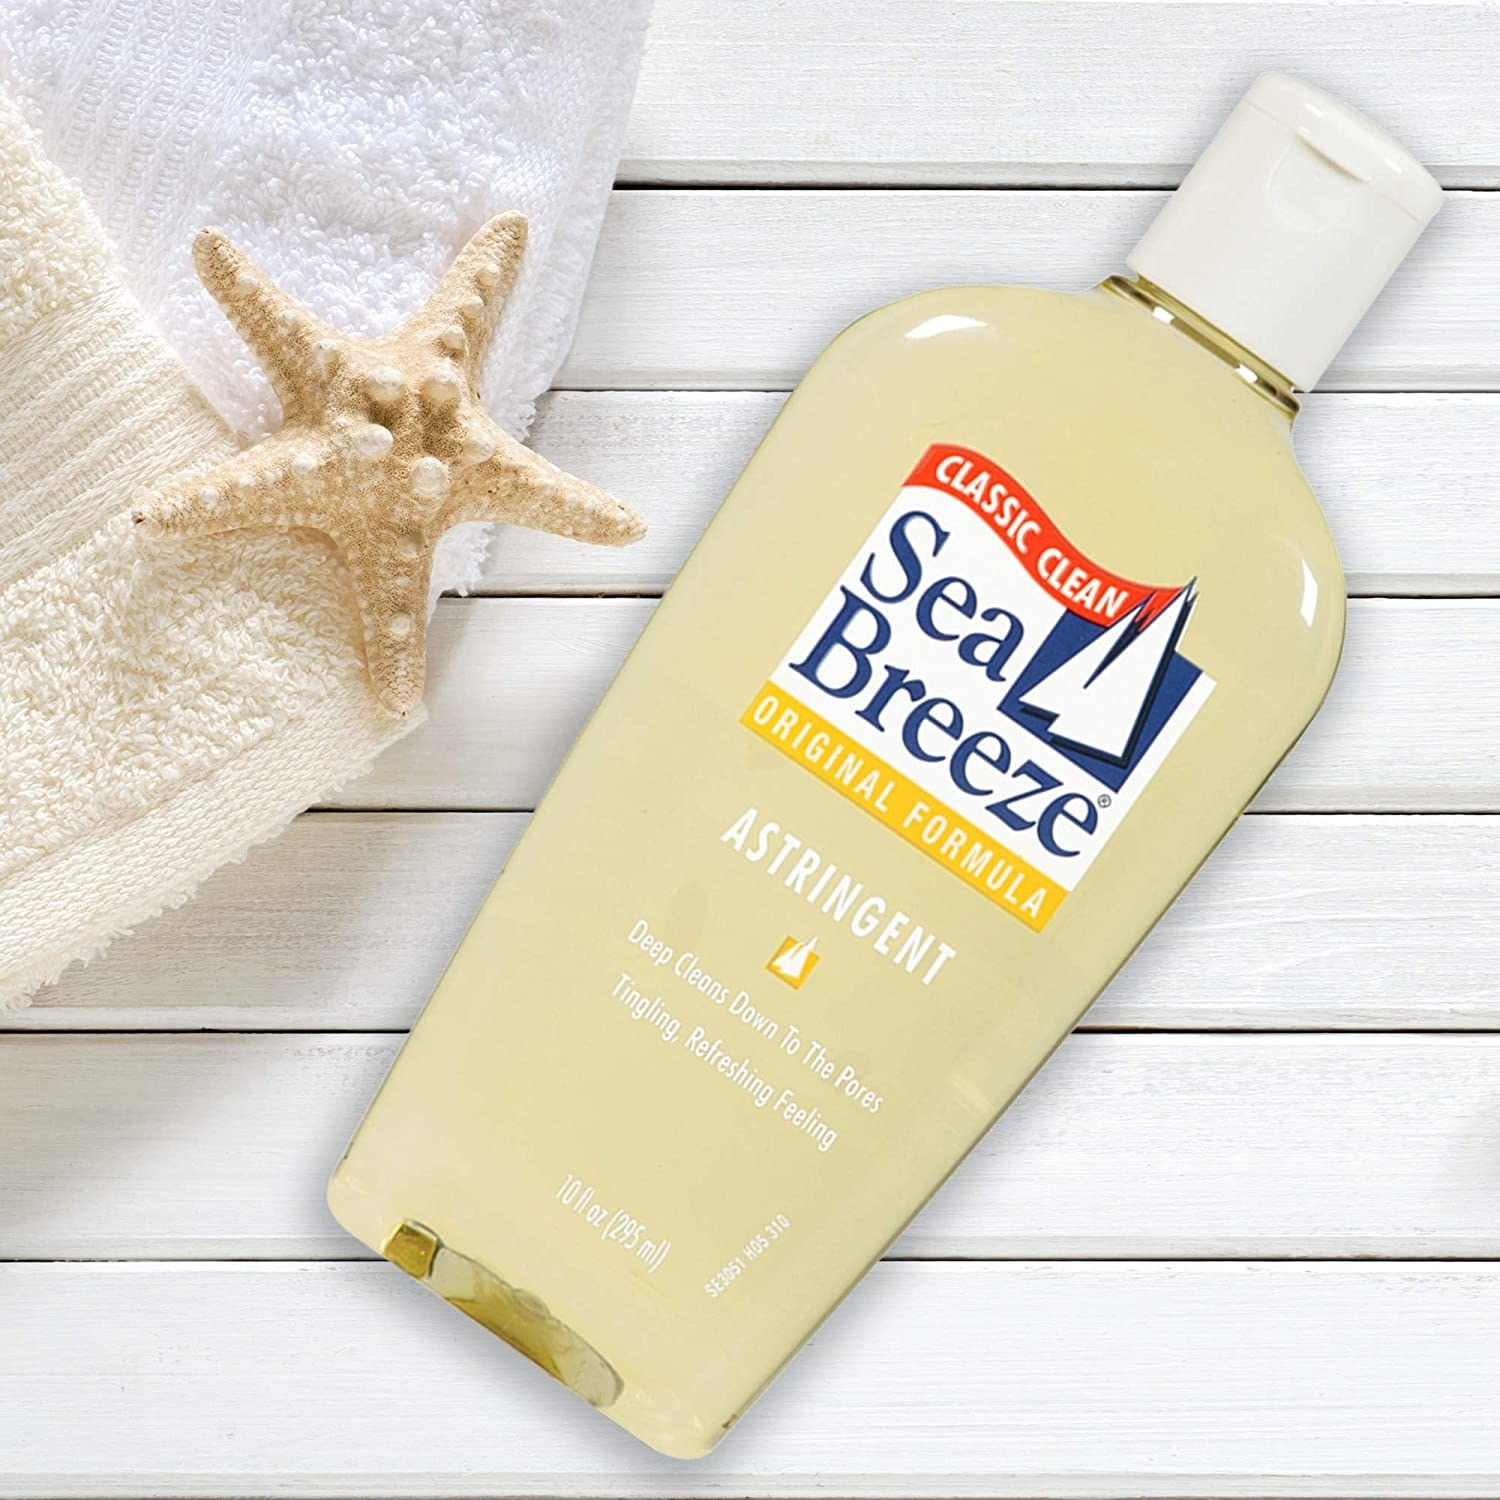 A bottle of Sea Breeze classic clean astringent